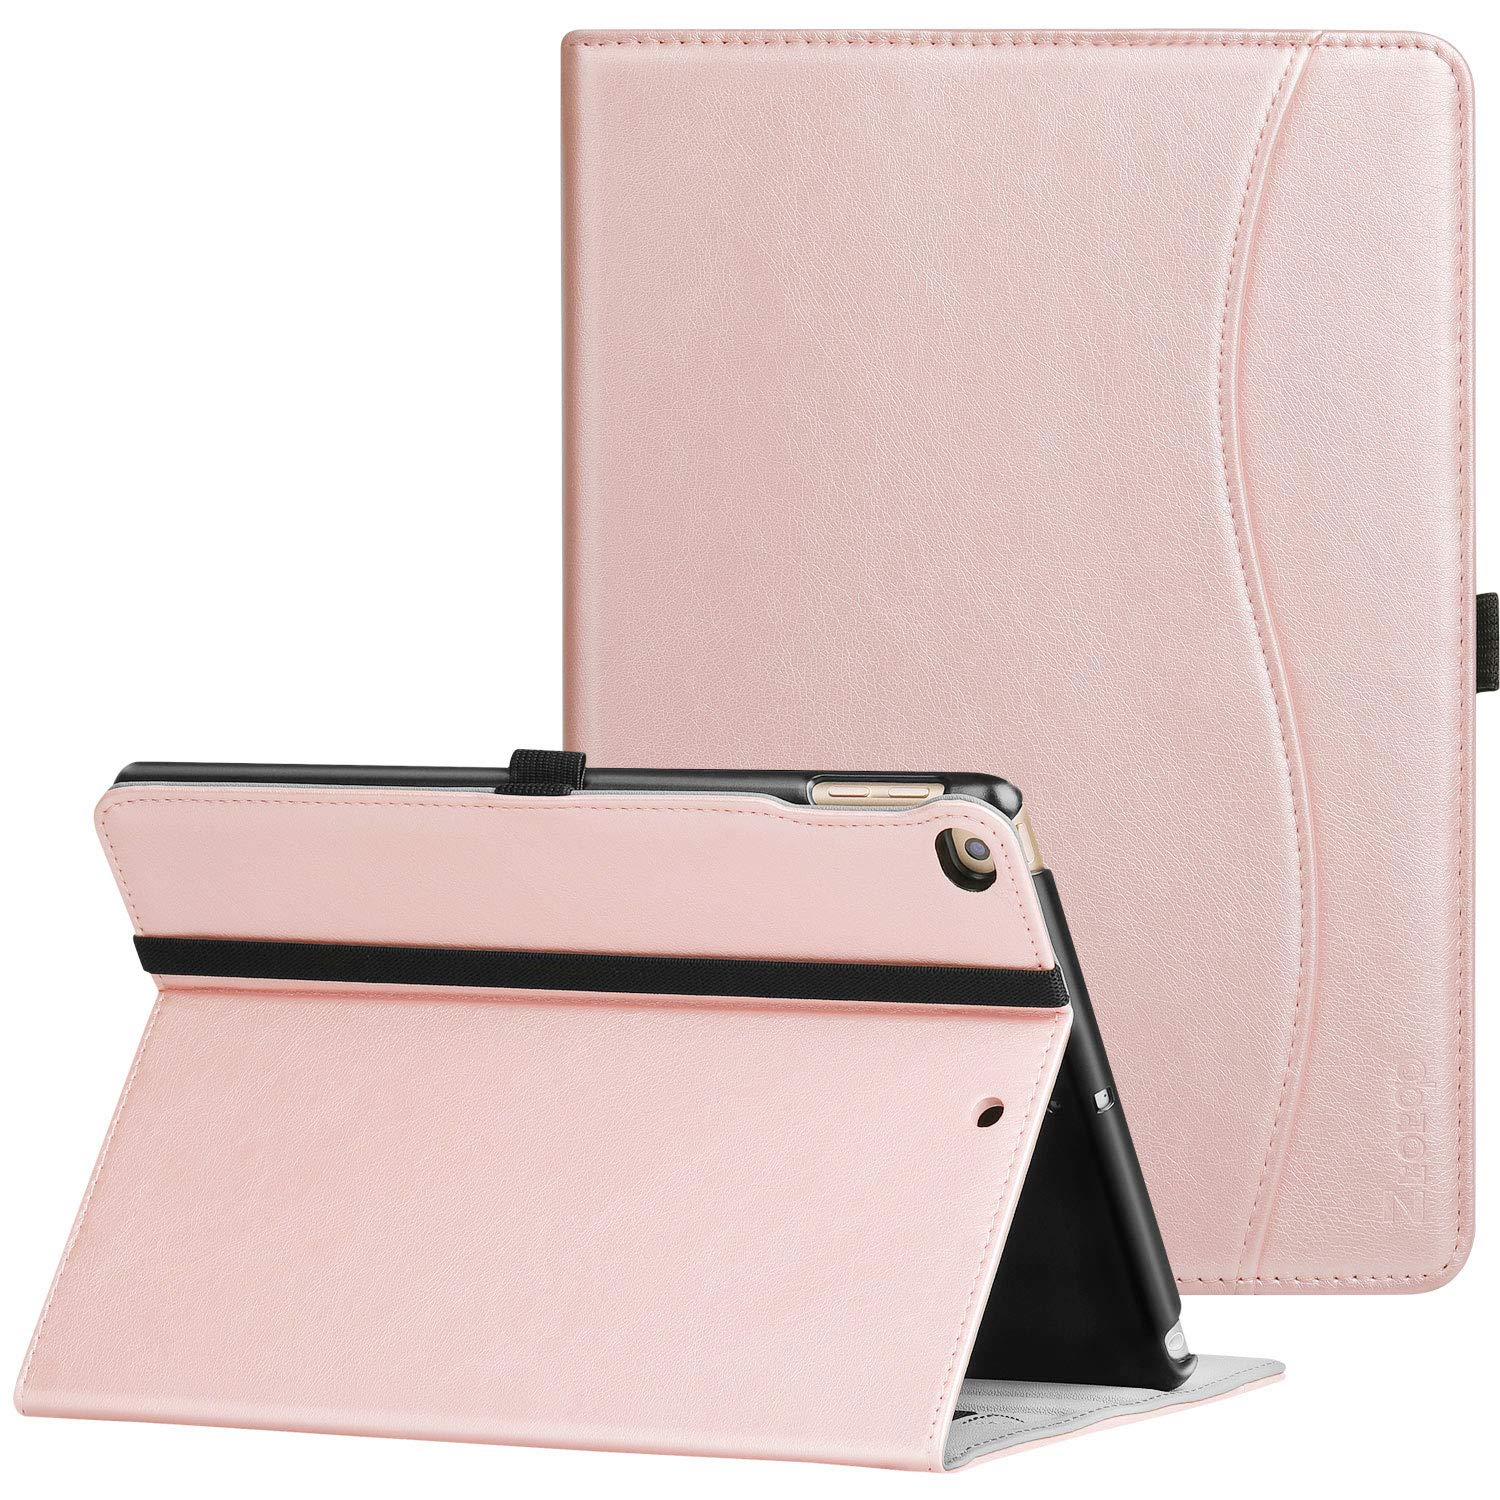 Ztotop Compatible with New IPad 9.7 Inch 2018/2017 Case,Premium Leather Business Slim Folding Stand Folio Cover with Auto Wake/Sleep,Pencil Holder and Multiple Viewing Angles,Rose Gold by Ztotop